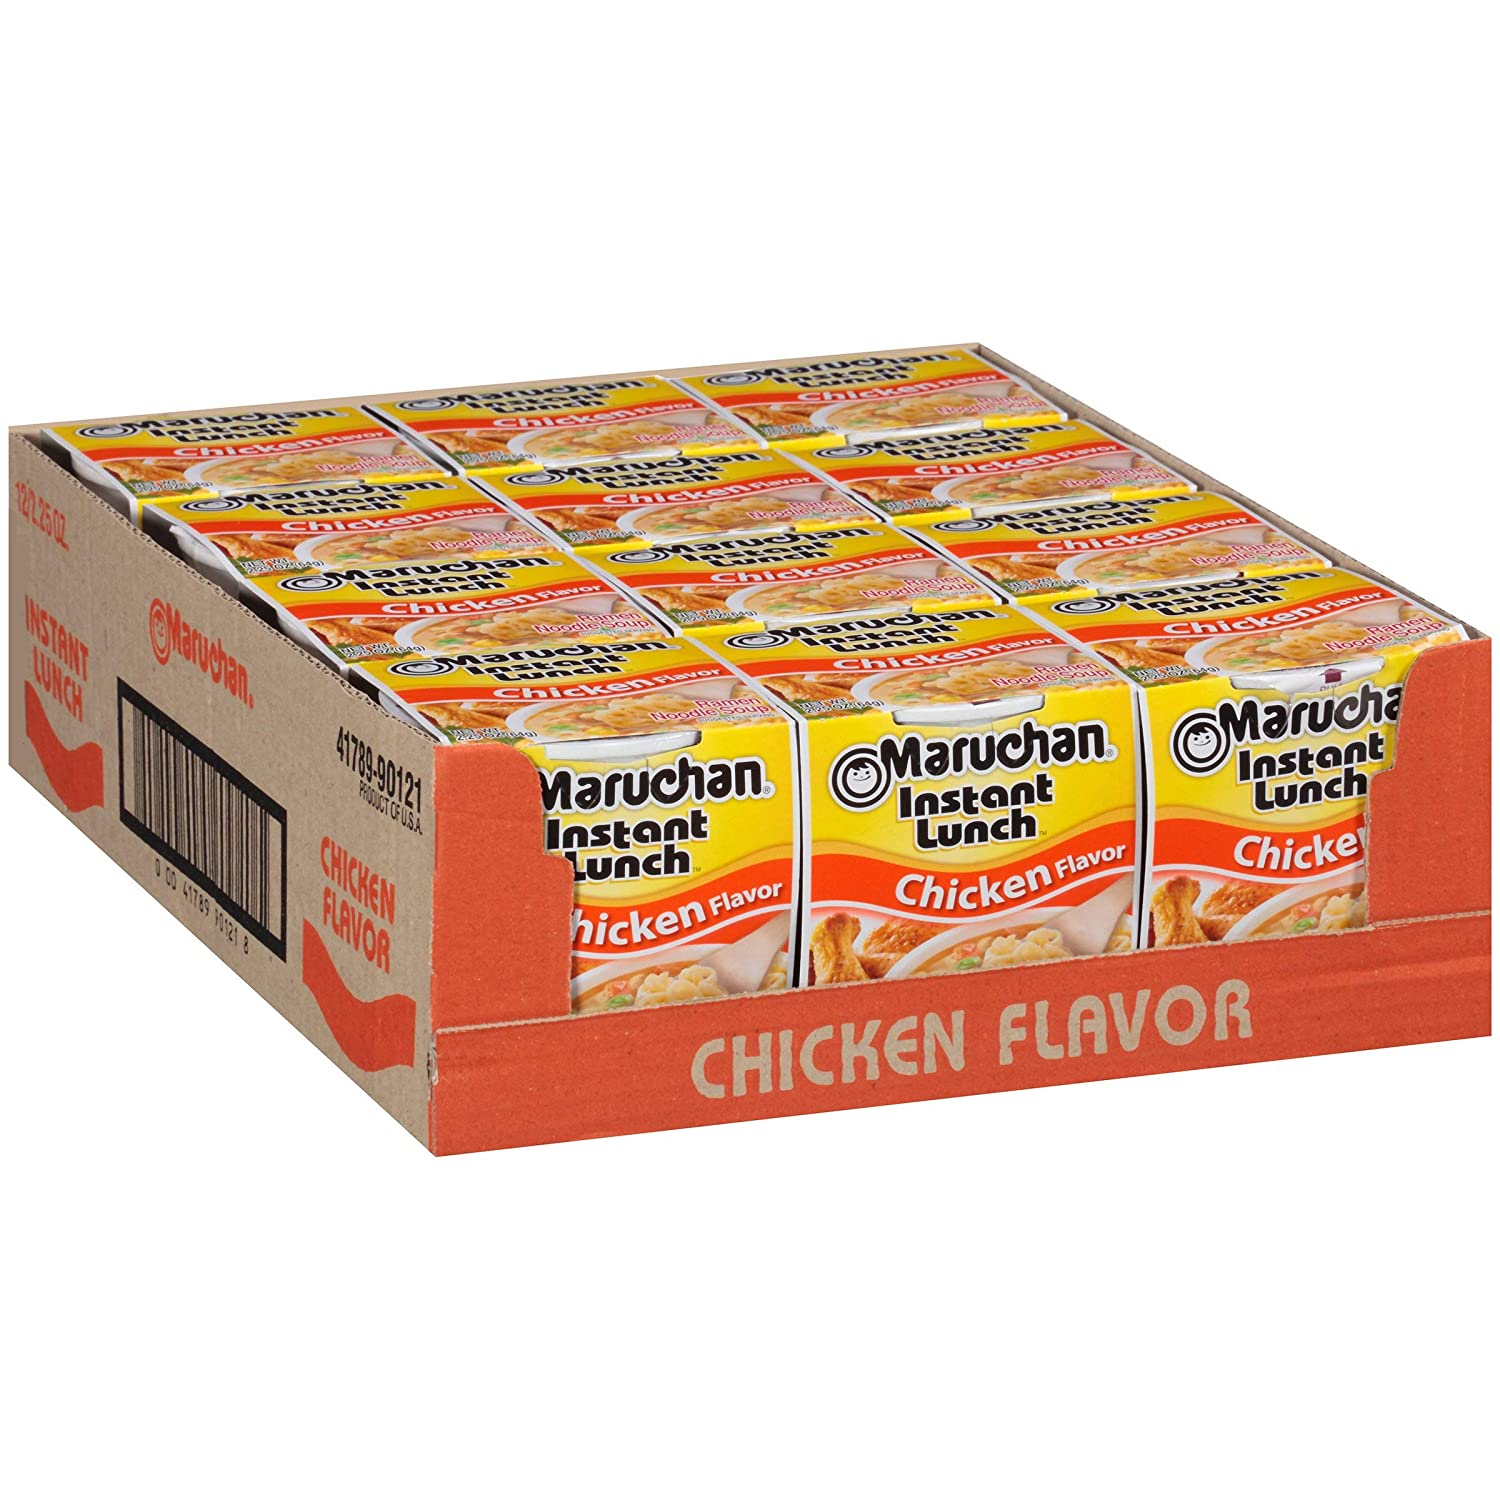 Maruchan Instant Lunch Chicken Flavor, 2.25 Ounce (Pack of 12), Set of 2